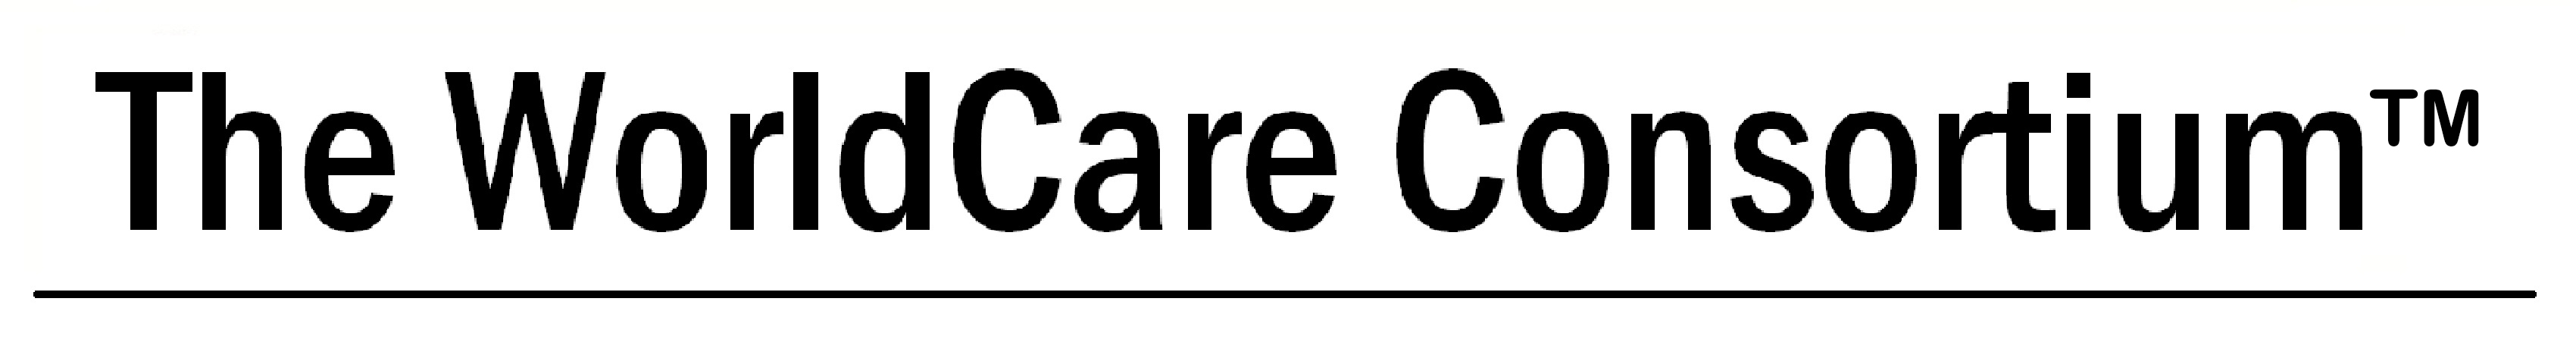 International Worldcare Consortium